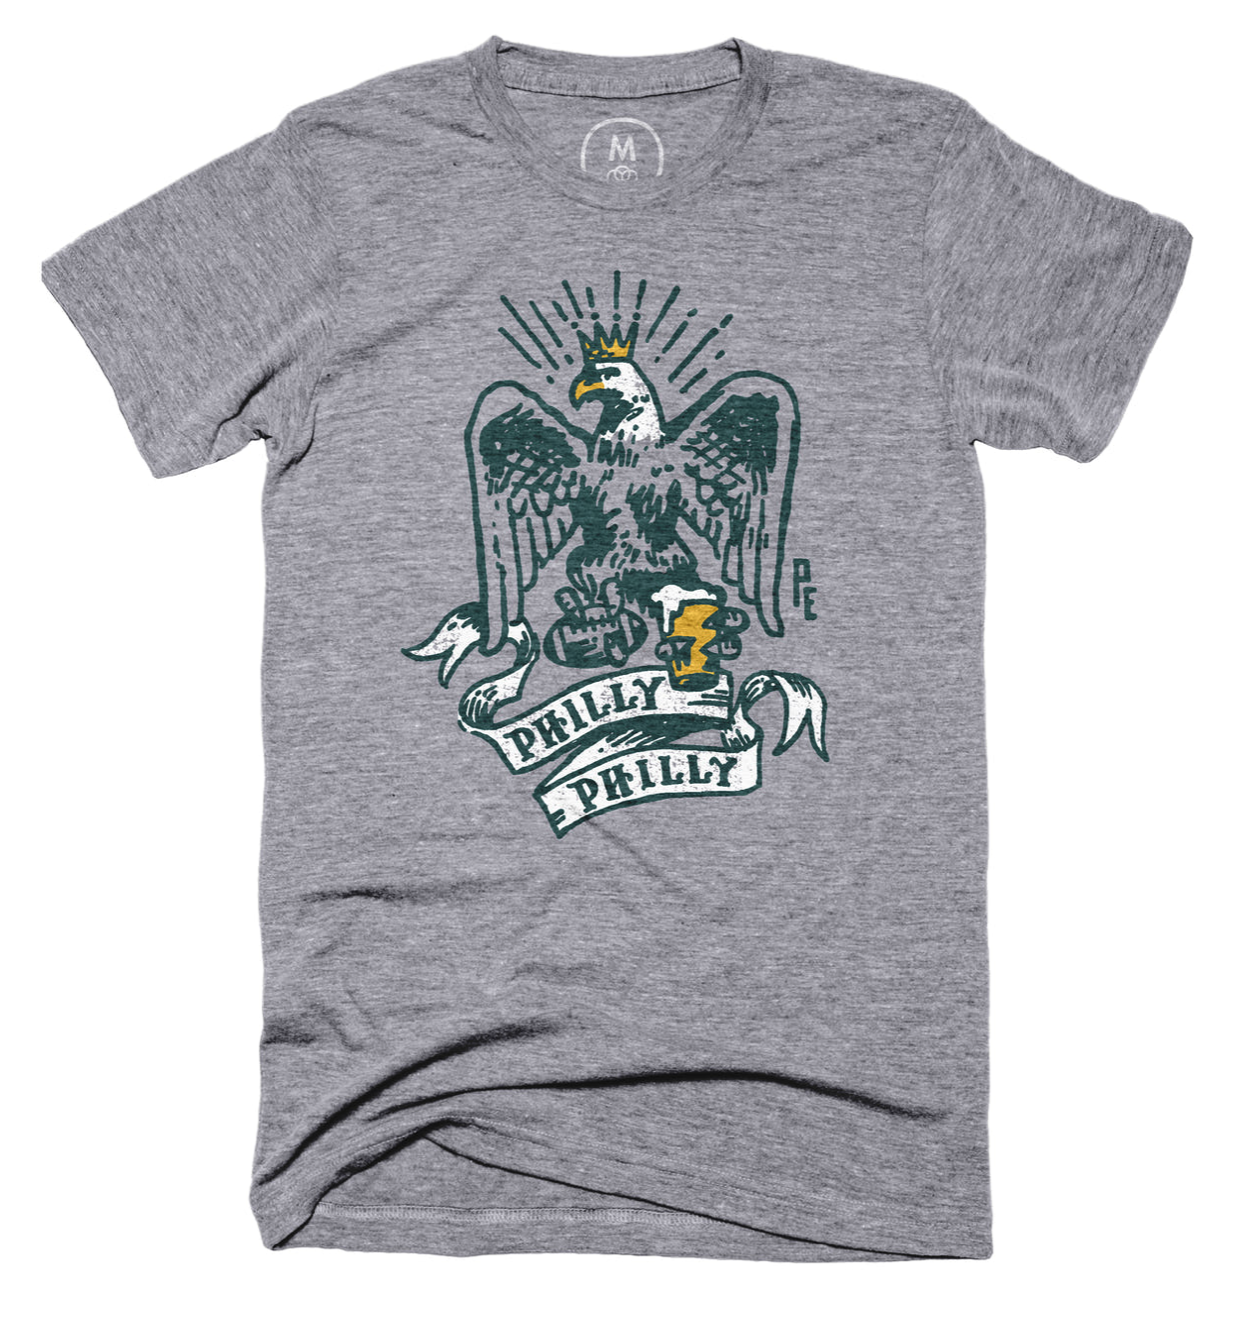 The Philly Philly T